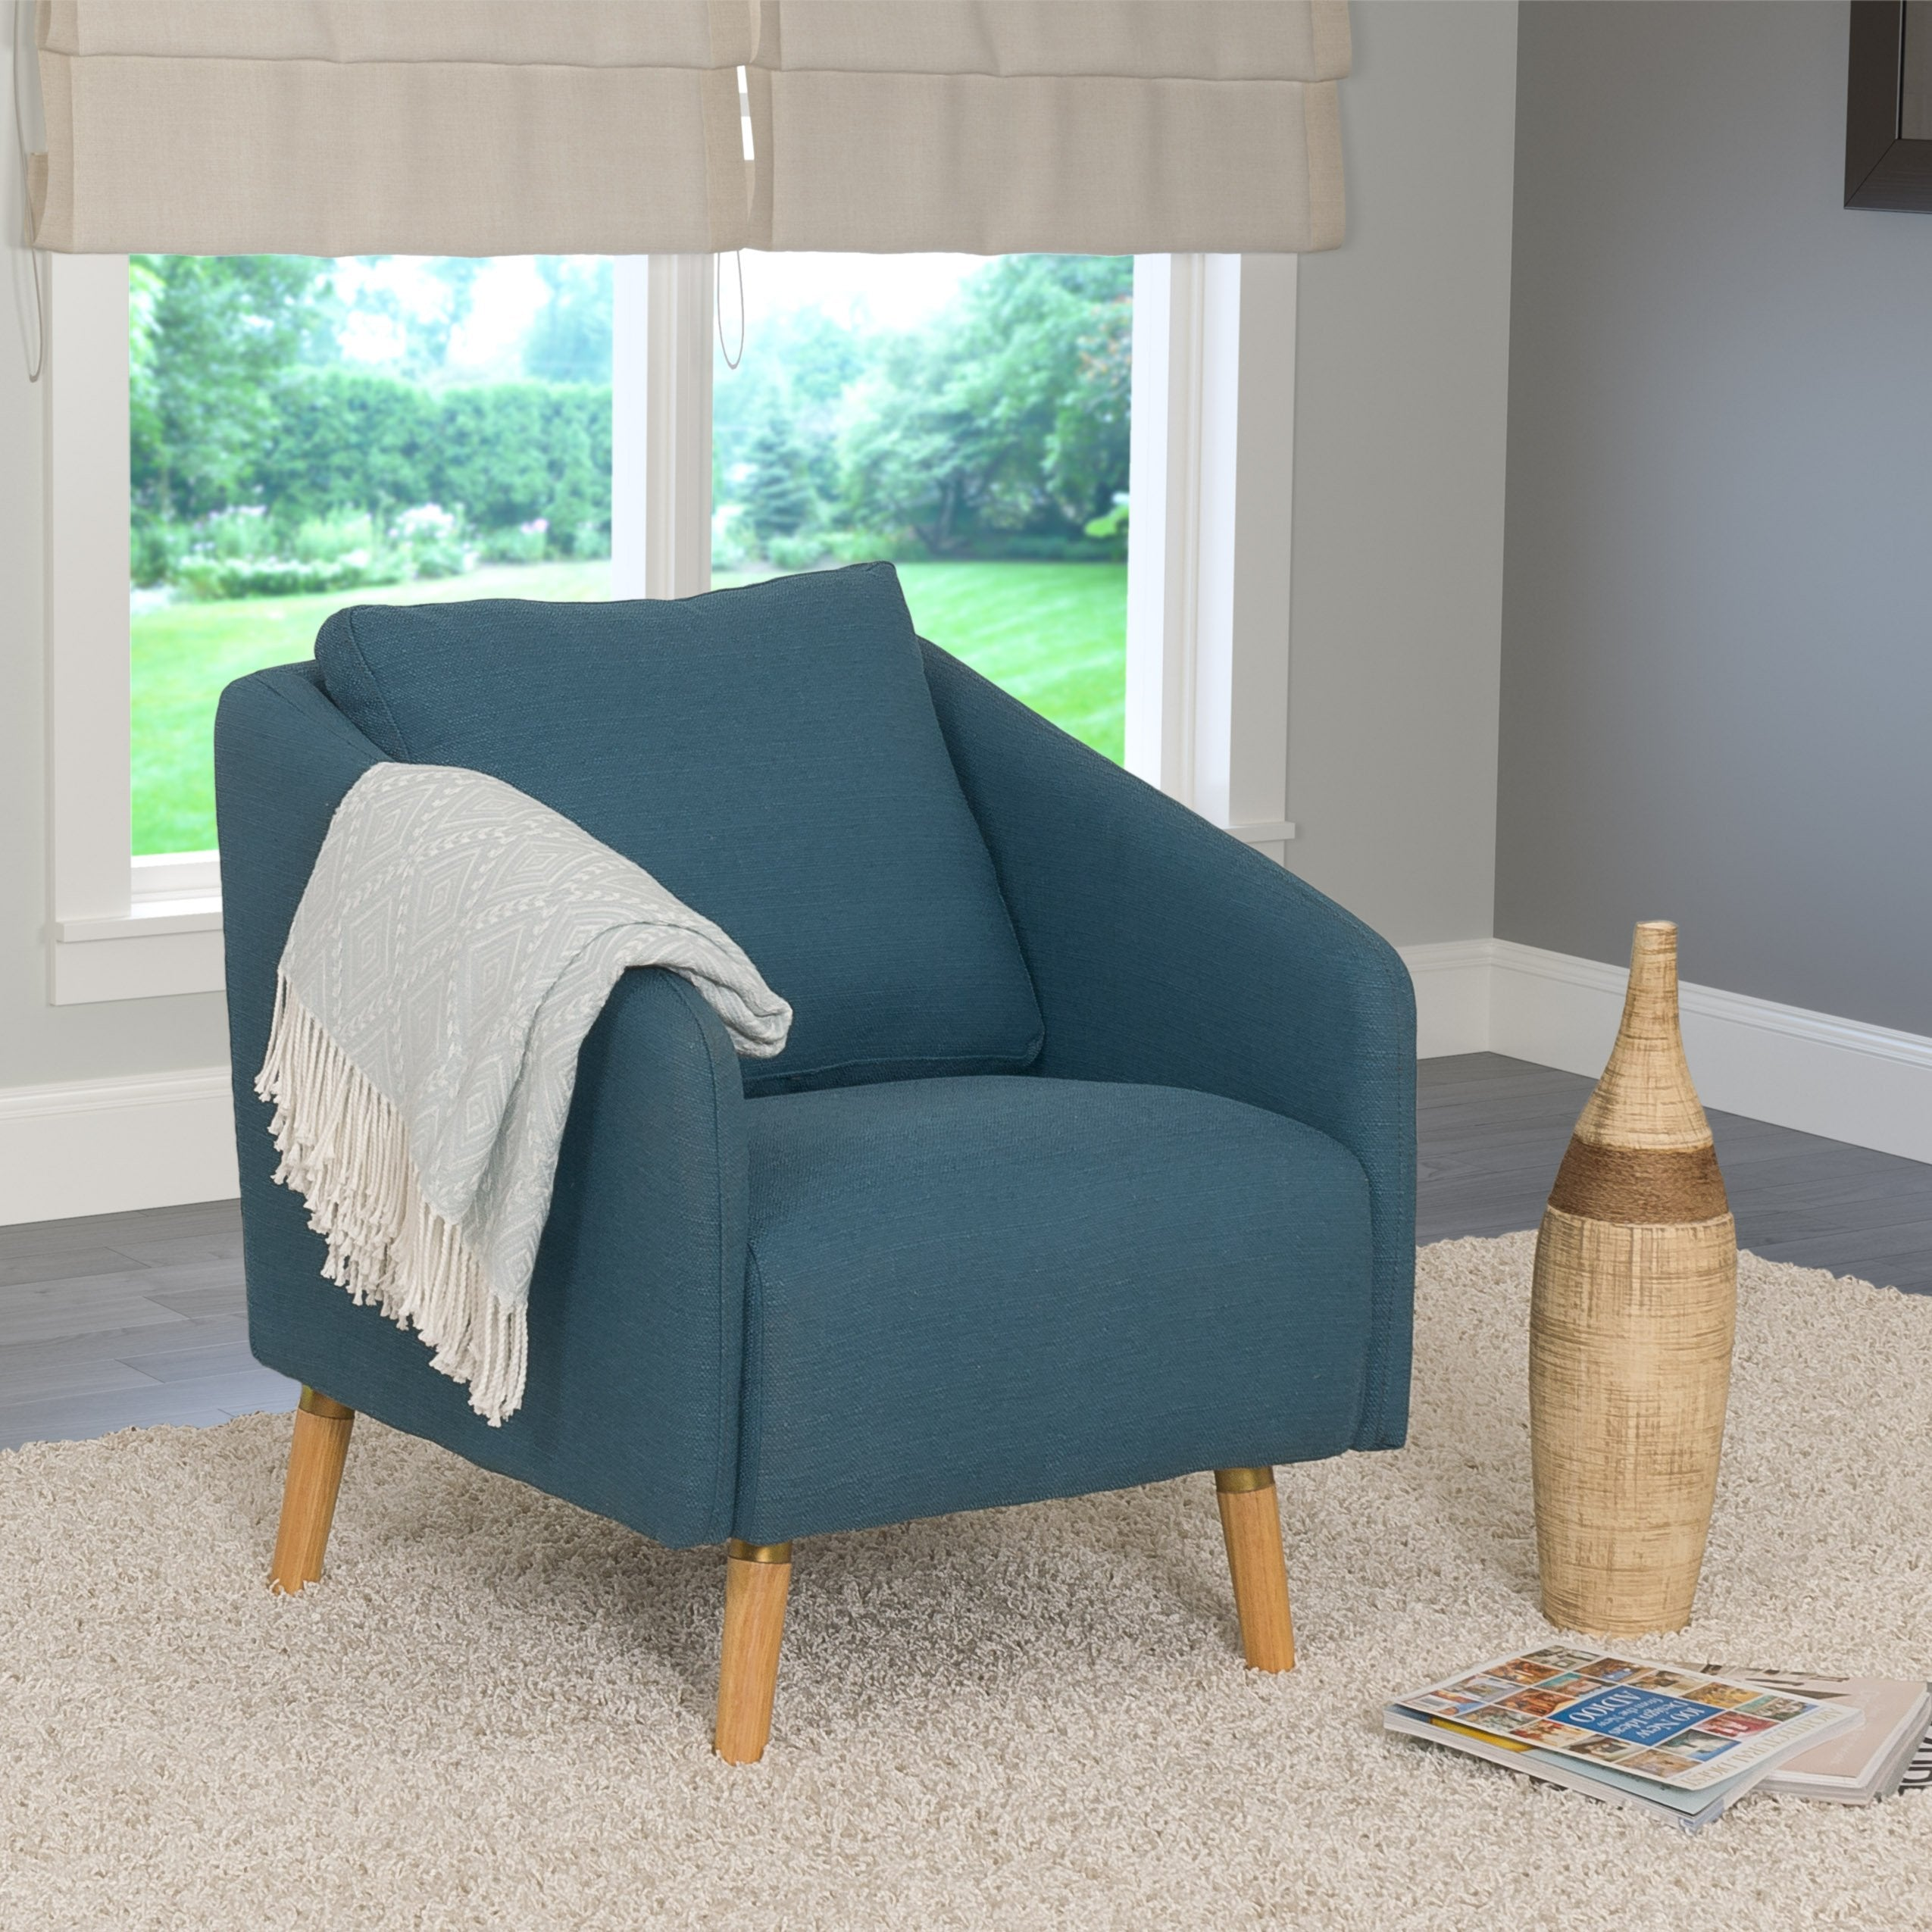 Woven Fabric Accent Chair With Flared Wooden Legs Clearance